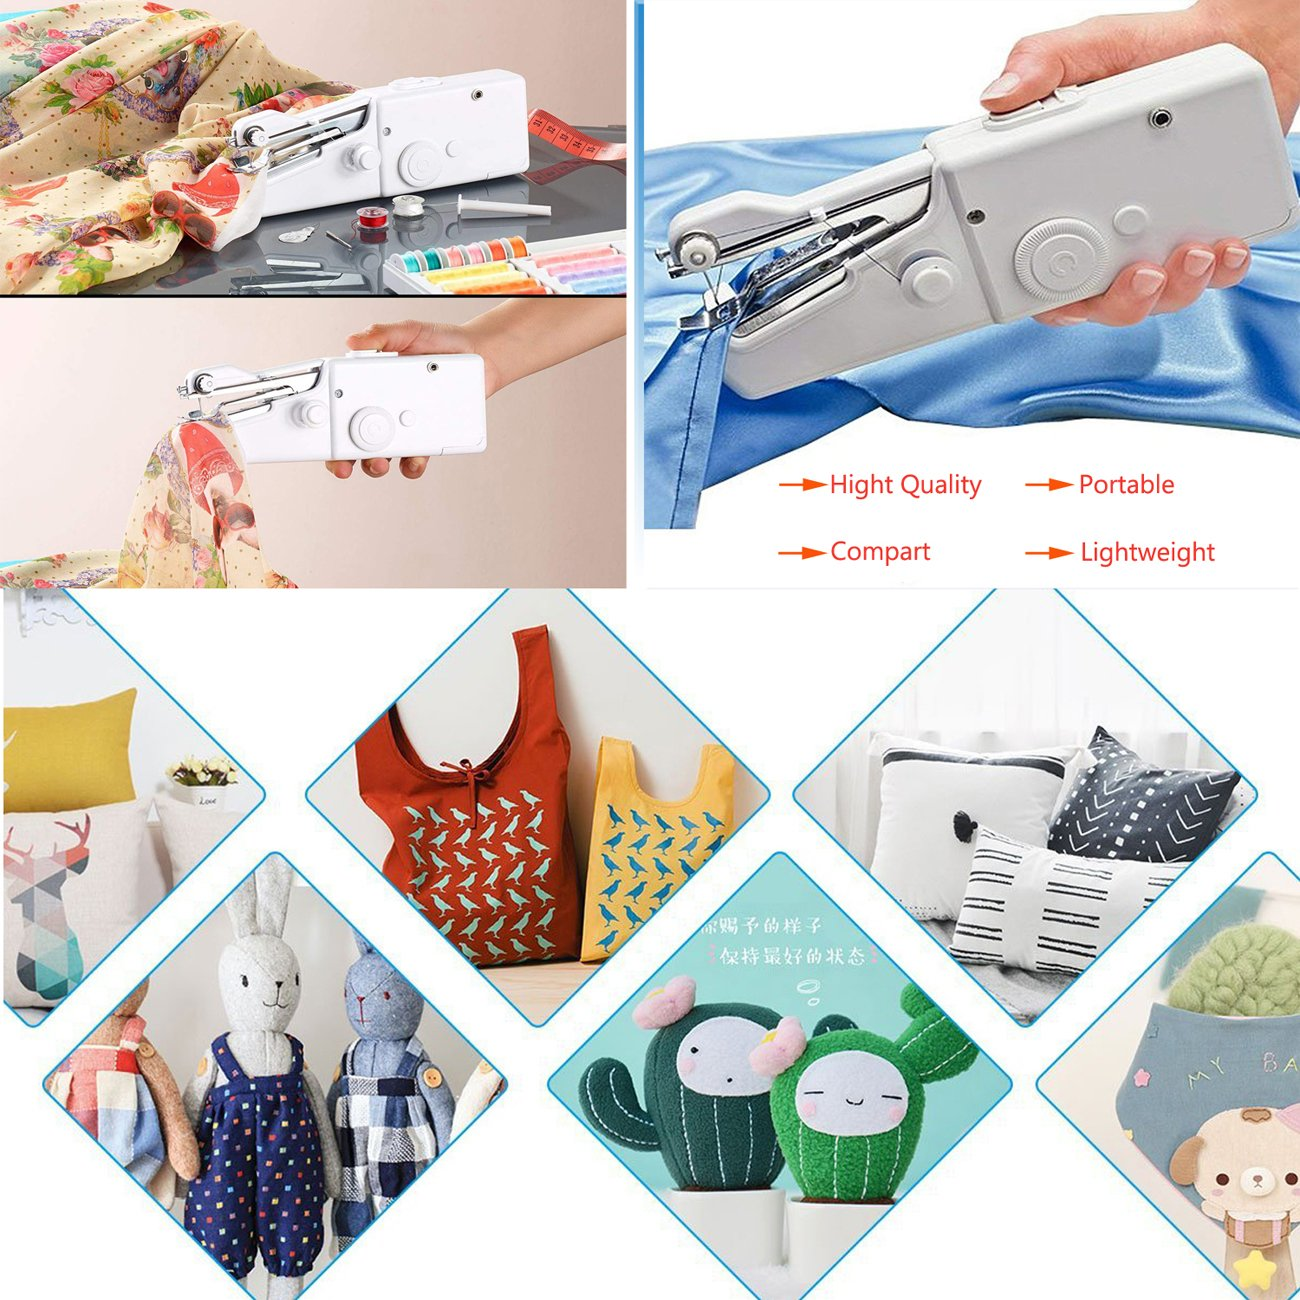 Portable Stitch Sew Hand Held🔥Last day promotion !